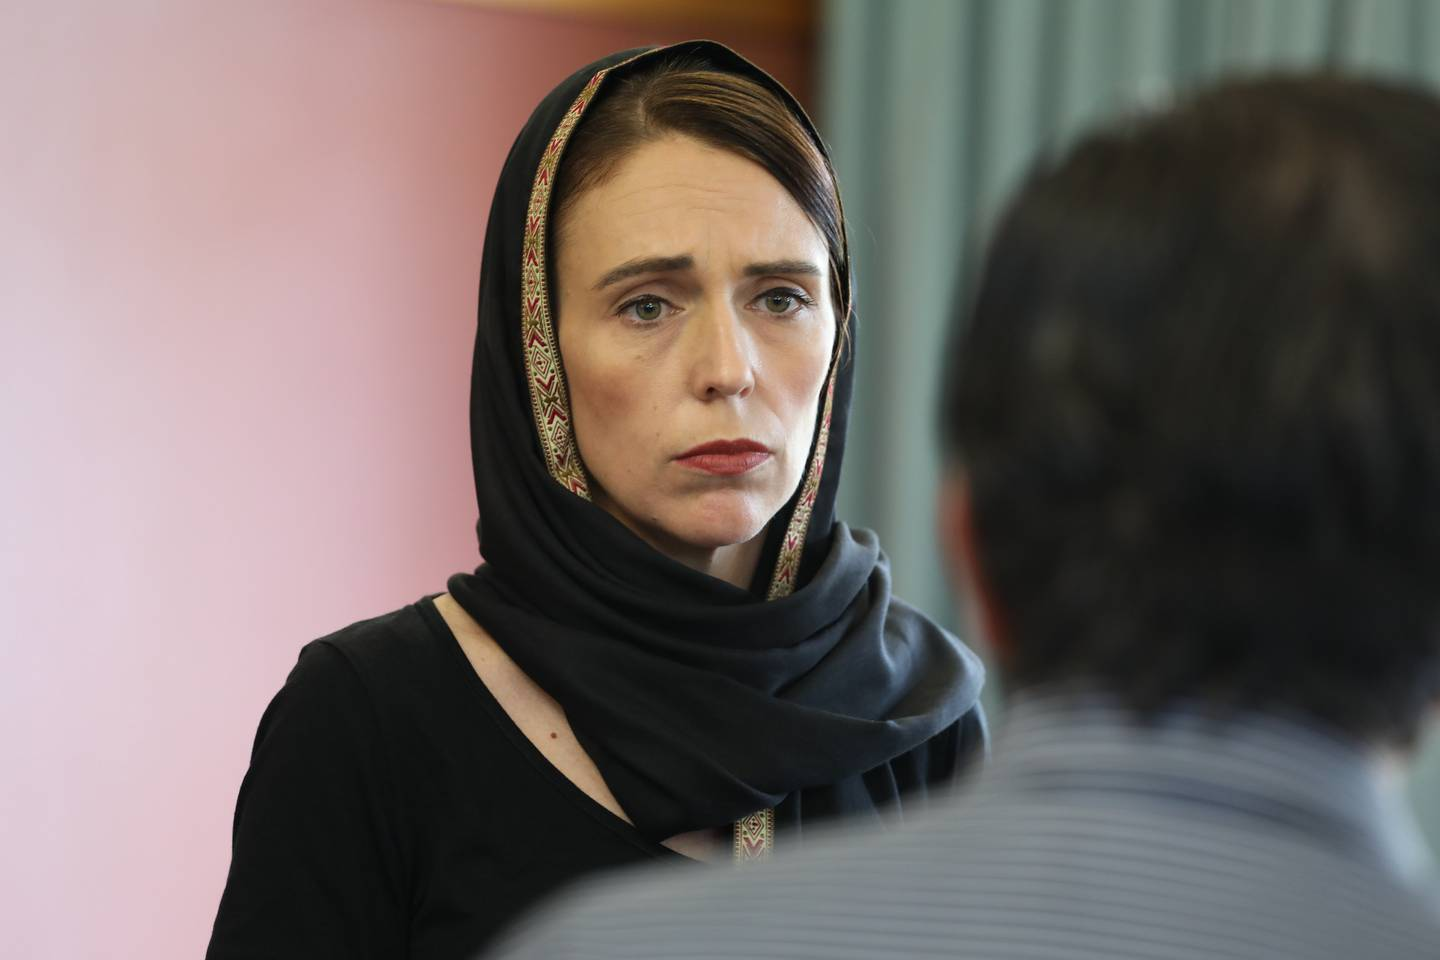 New Zealand Prime Minister Jacinda Ardern pictured a day after the devastating Christchurch mosque shootings in March, 2019. Photo / Supplied